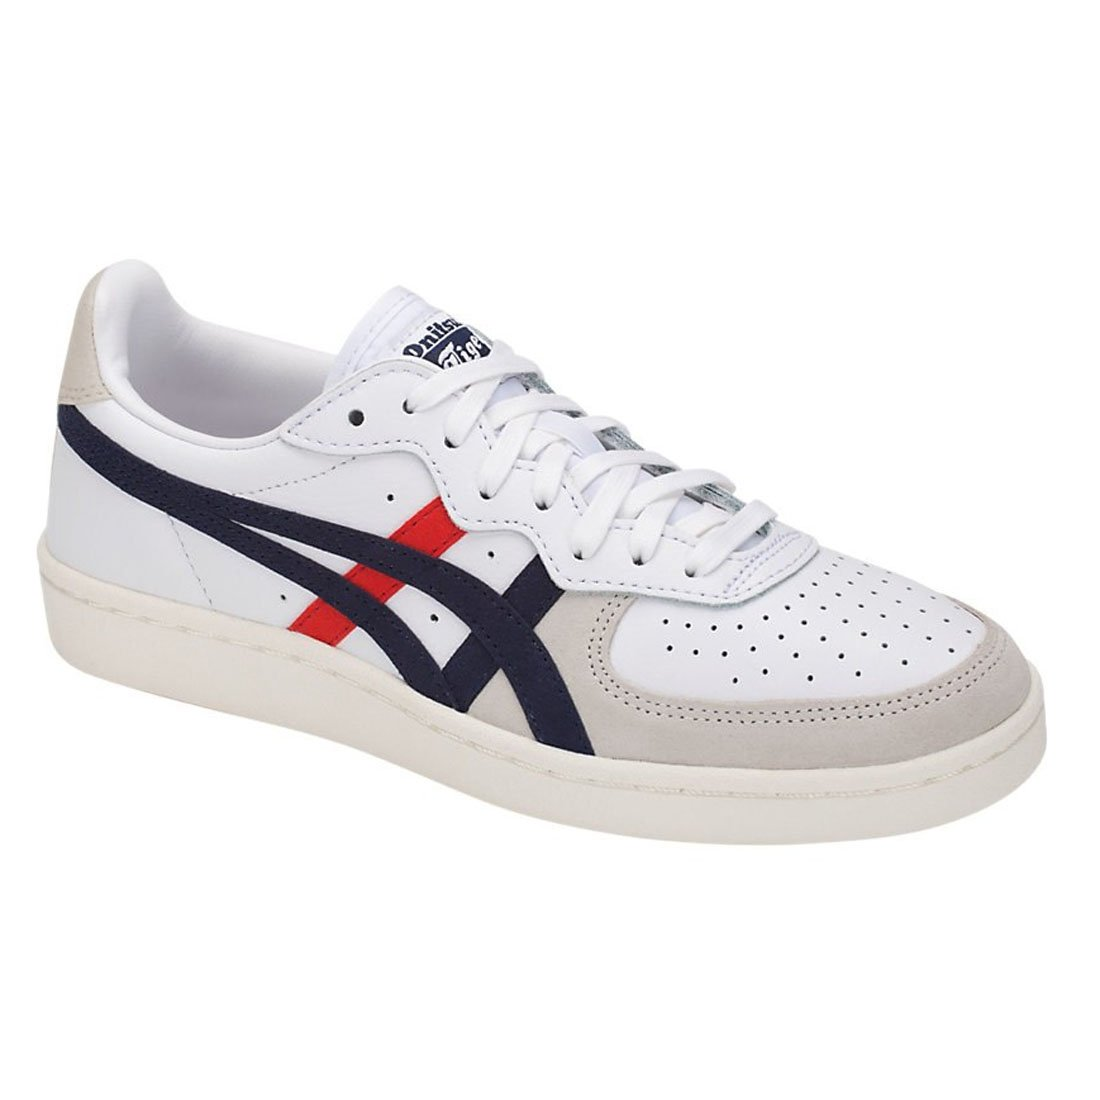 san francisco 22802 43c88 ASICS Onitsuka Tiger GSM Men | White/Peacoat (D5K2Y-100 ...